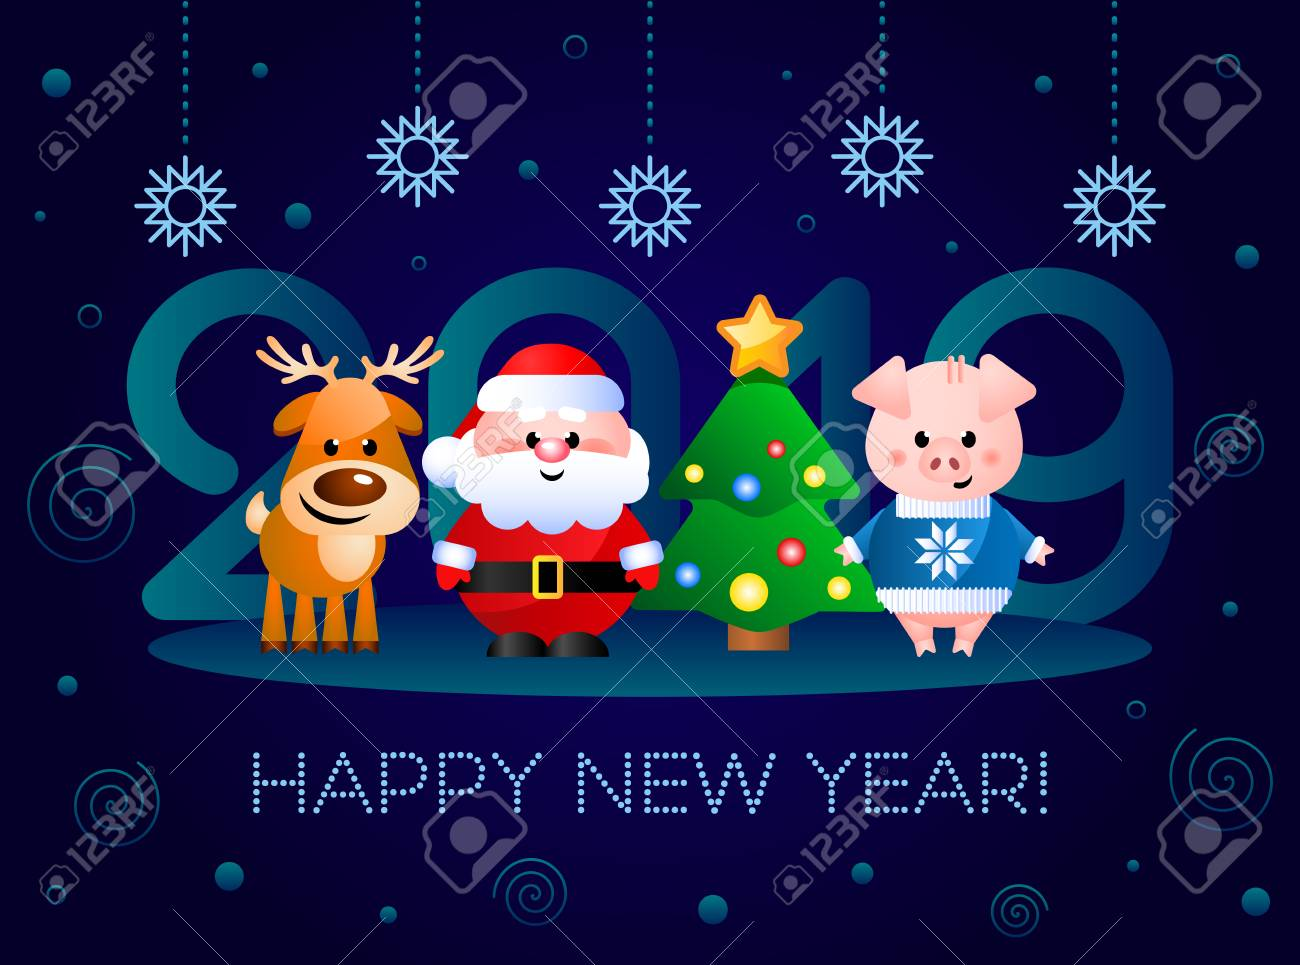 happy new year 2019 greeting card with cute cartoon characters vector illustration stock